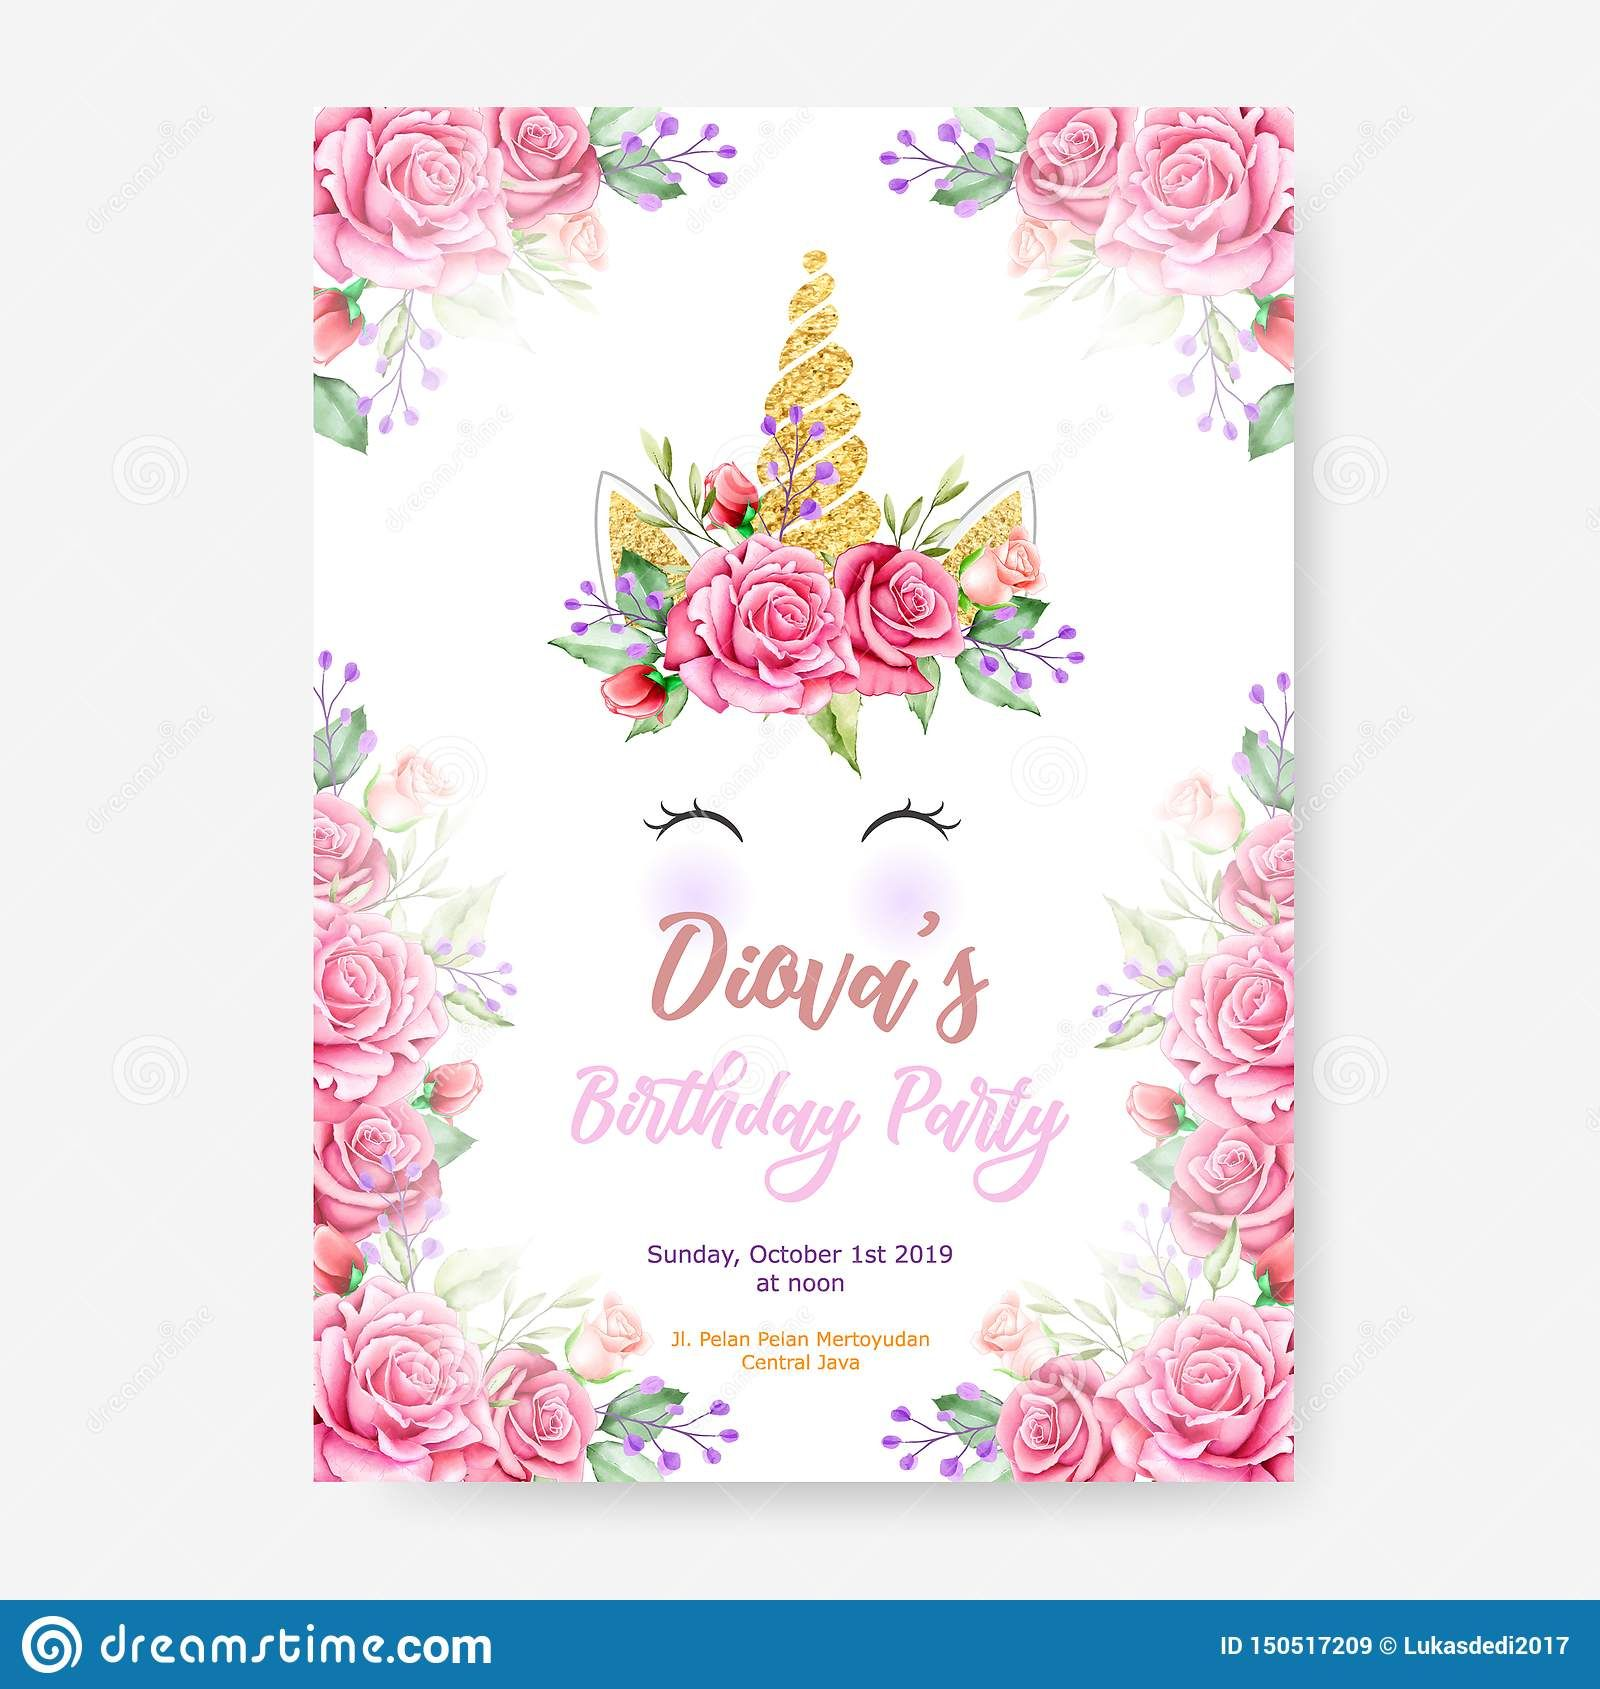 Pin By Mizan On Islam Unicorn Invitations Flower Frame Party Poster